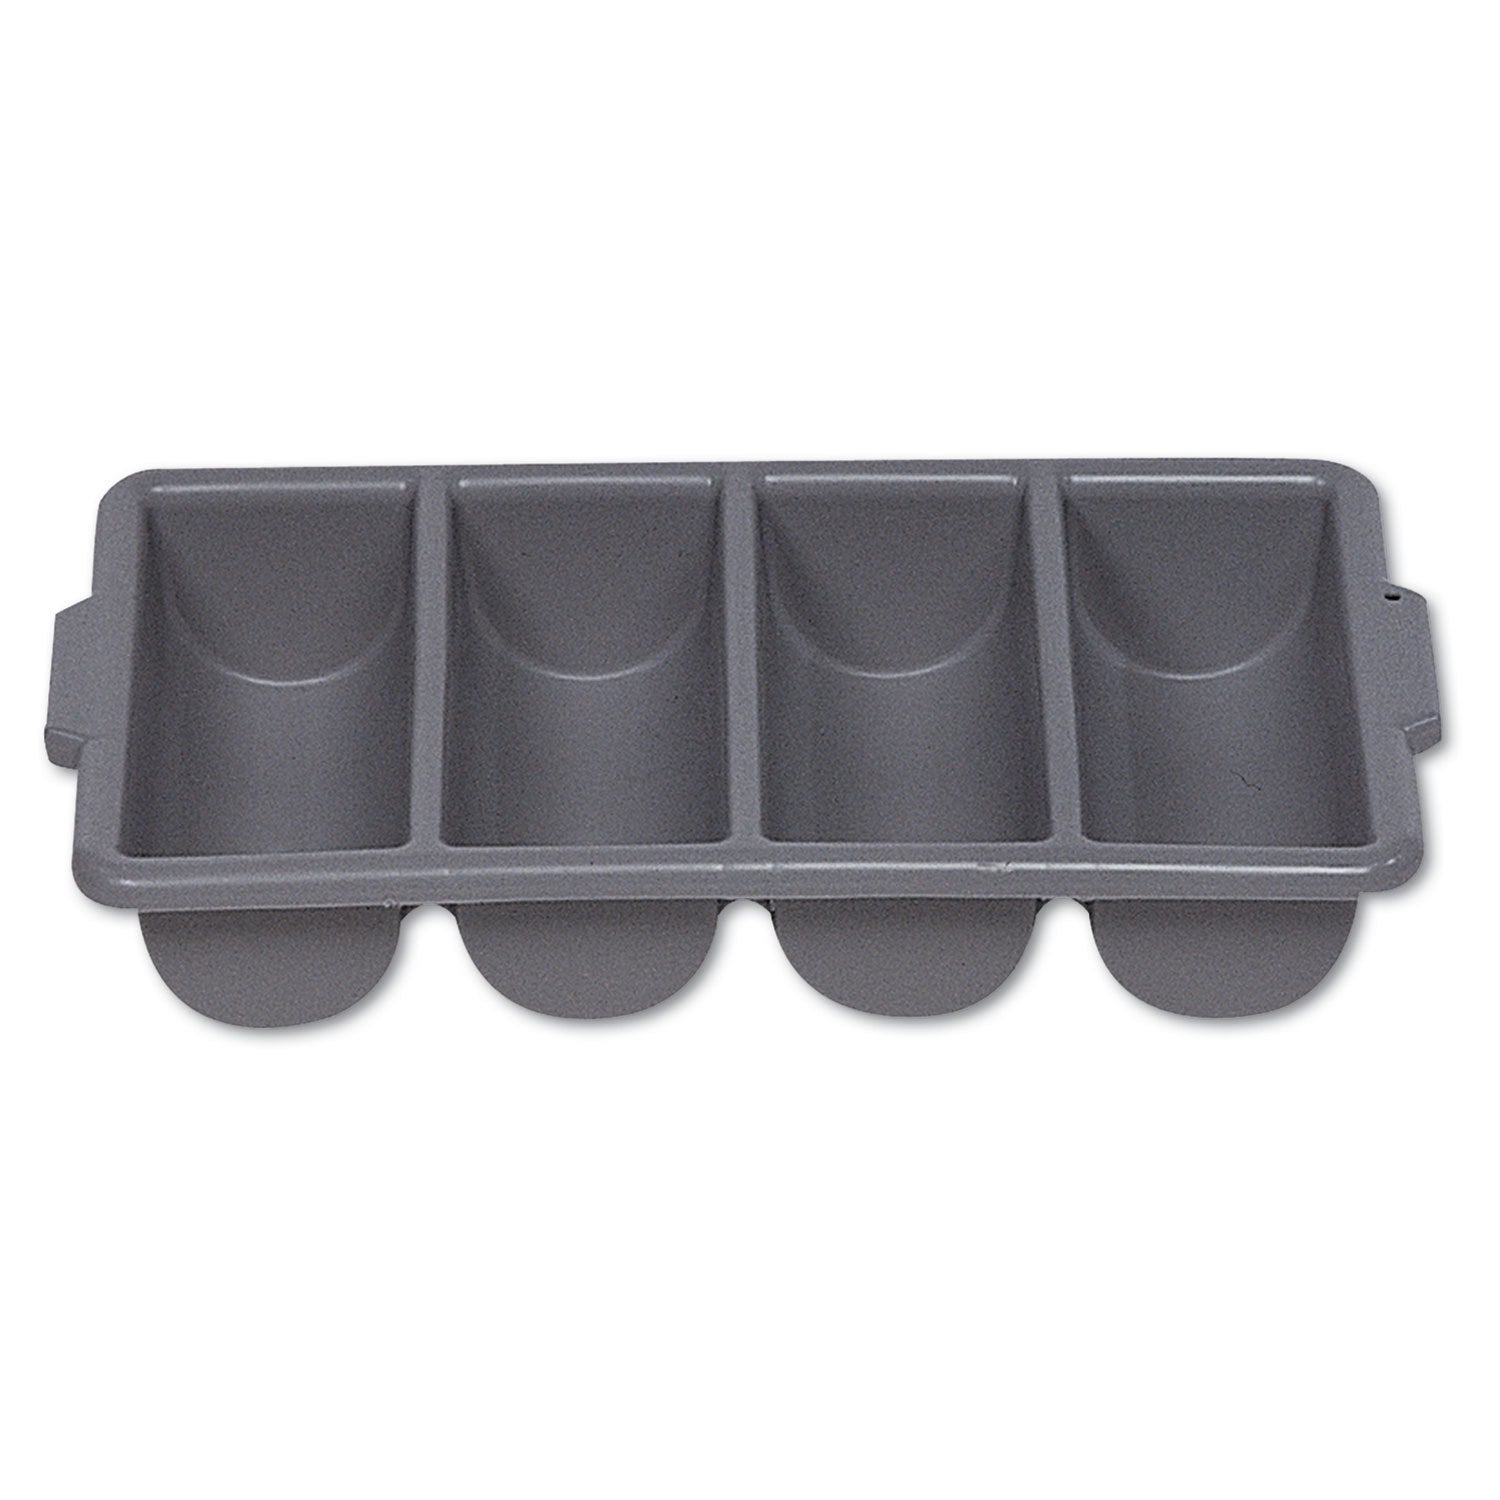 Rubbermaid Commercial Cutlery Bin 4 Compartments Plastic ...